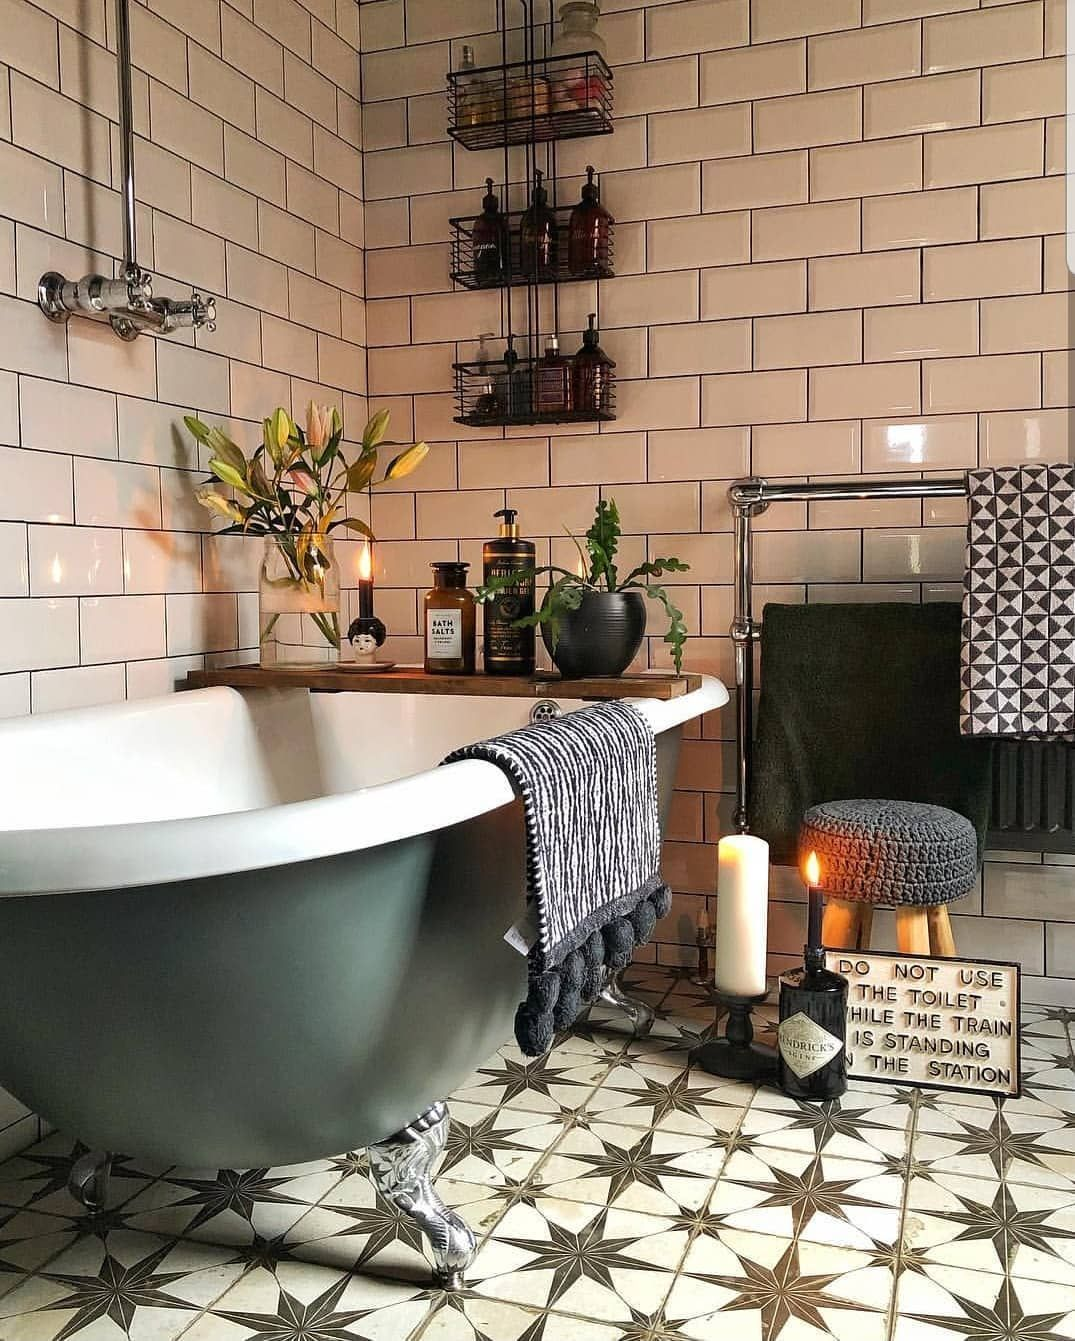 Amazing Bohemian Style Bathroom Decor Ideas 24